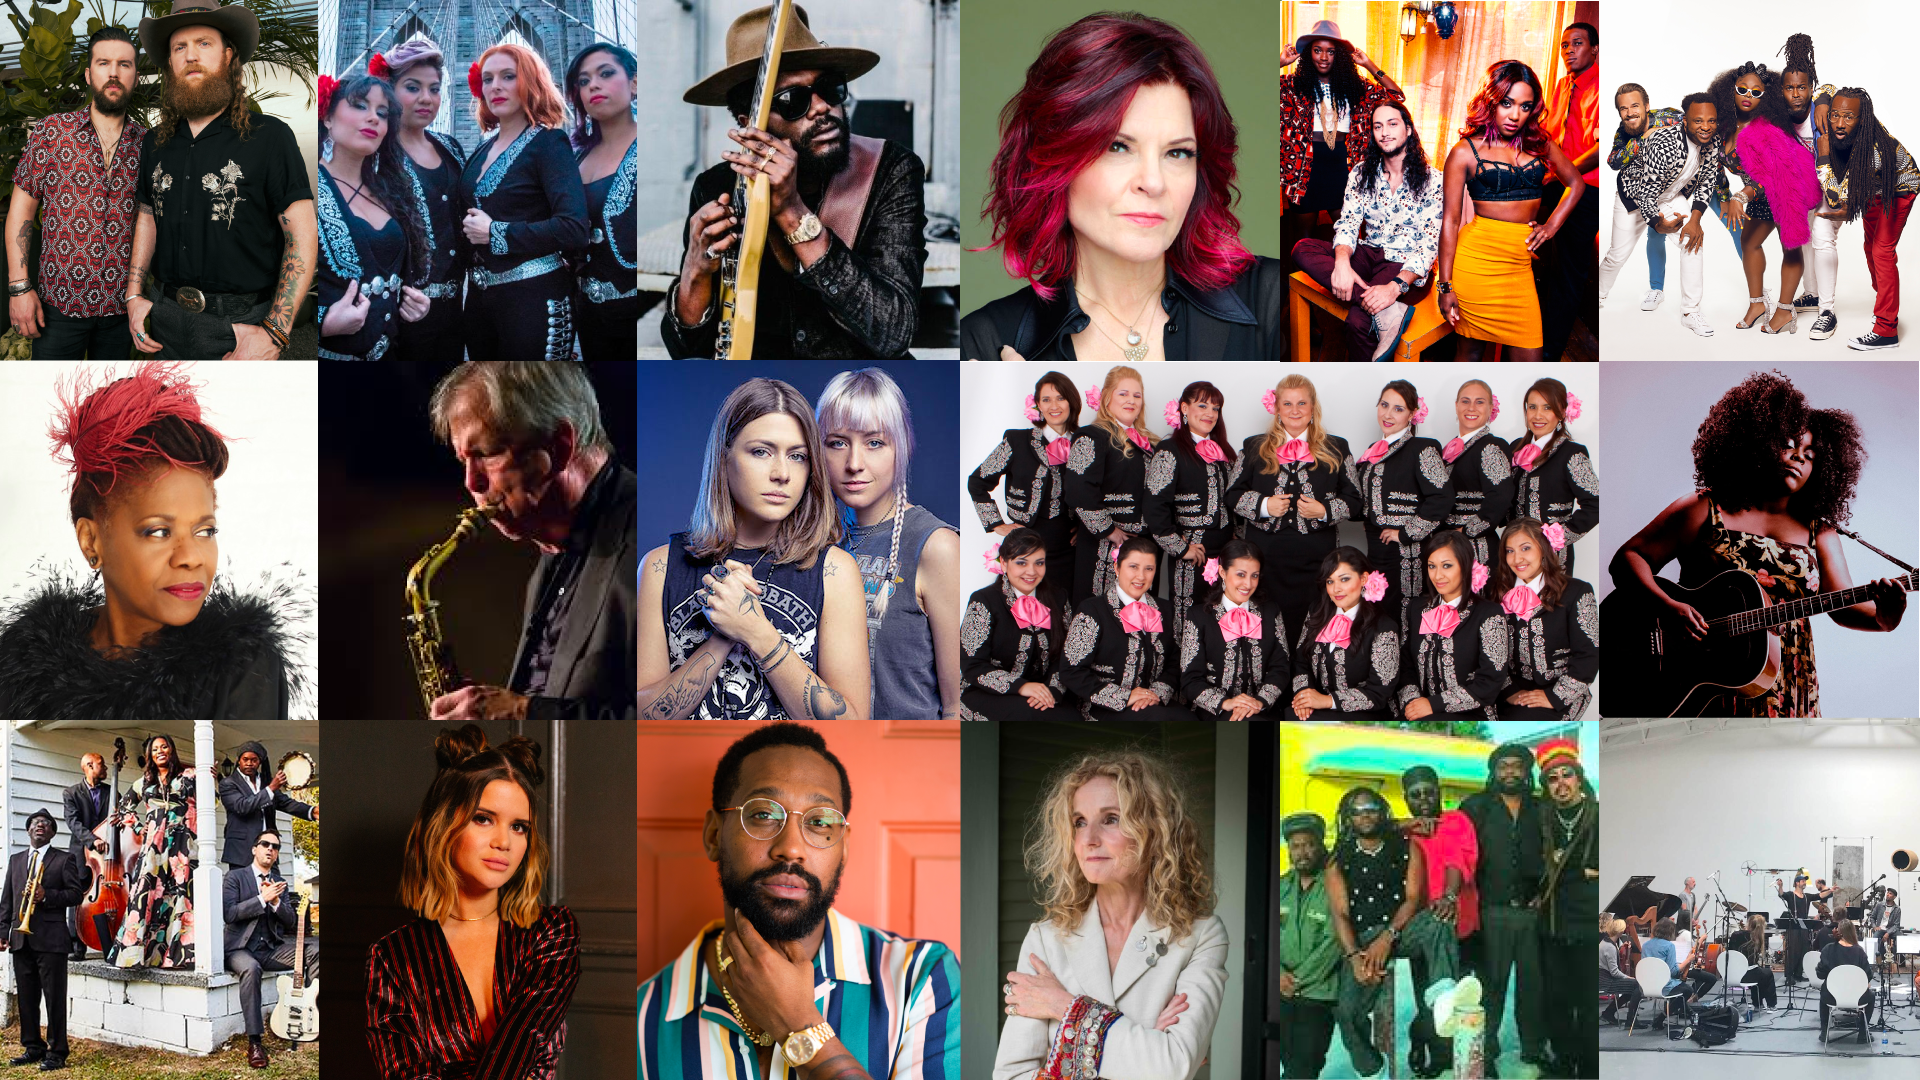 (Left to Right) Top Row: Brothers Osborne, Flor De Toloache, Gary Clark Jr., Rosanne Cash, Southern Avenue, Tank and the Bangas; Middle Row: Catherine Russell, Dick Oatts, Larkin Poe, Mariachi Divas, Yola Carter; Bottom Row: Ranky Tanky, Maren Morris, P.J. Morton, Patty Griffin, Third World, The String Theory.